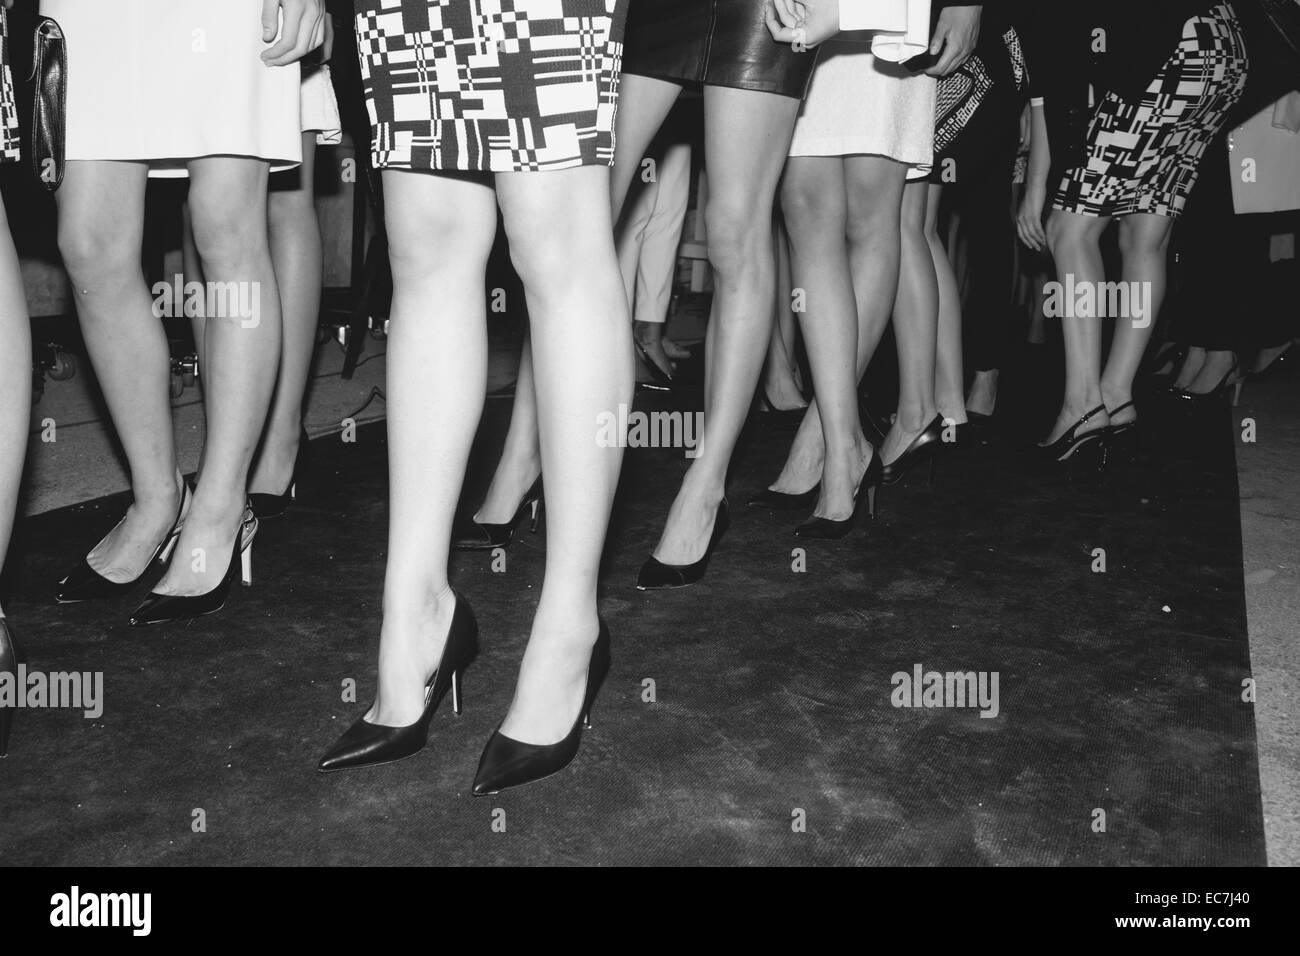 Models in a fashion show - backstage - Stock Image